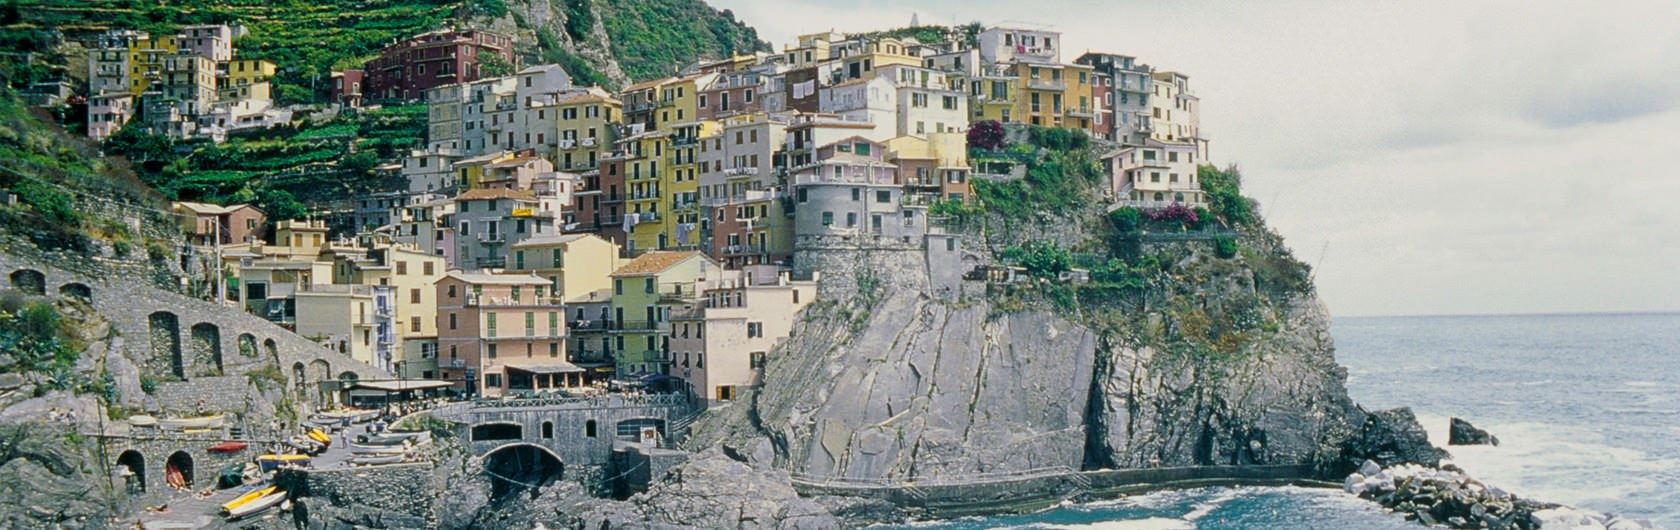 1. Northern Italy: Cinque Terre Coastal, from Levanto to Portovenere